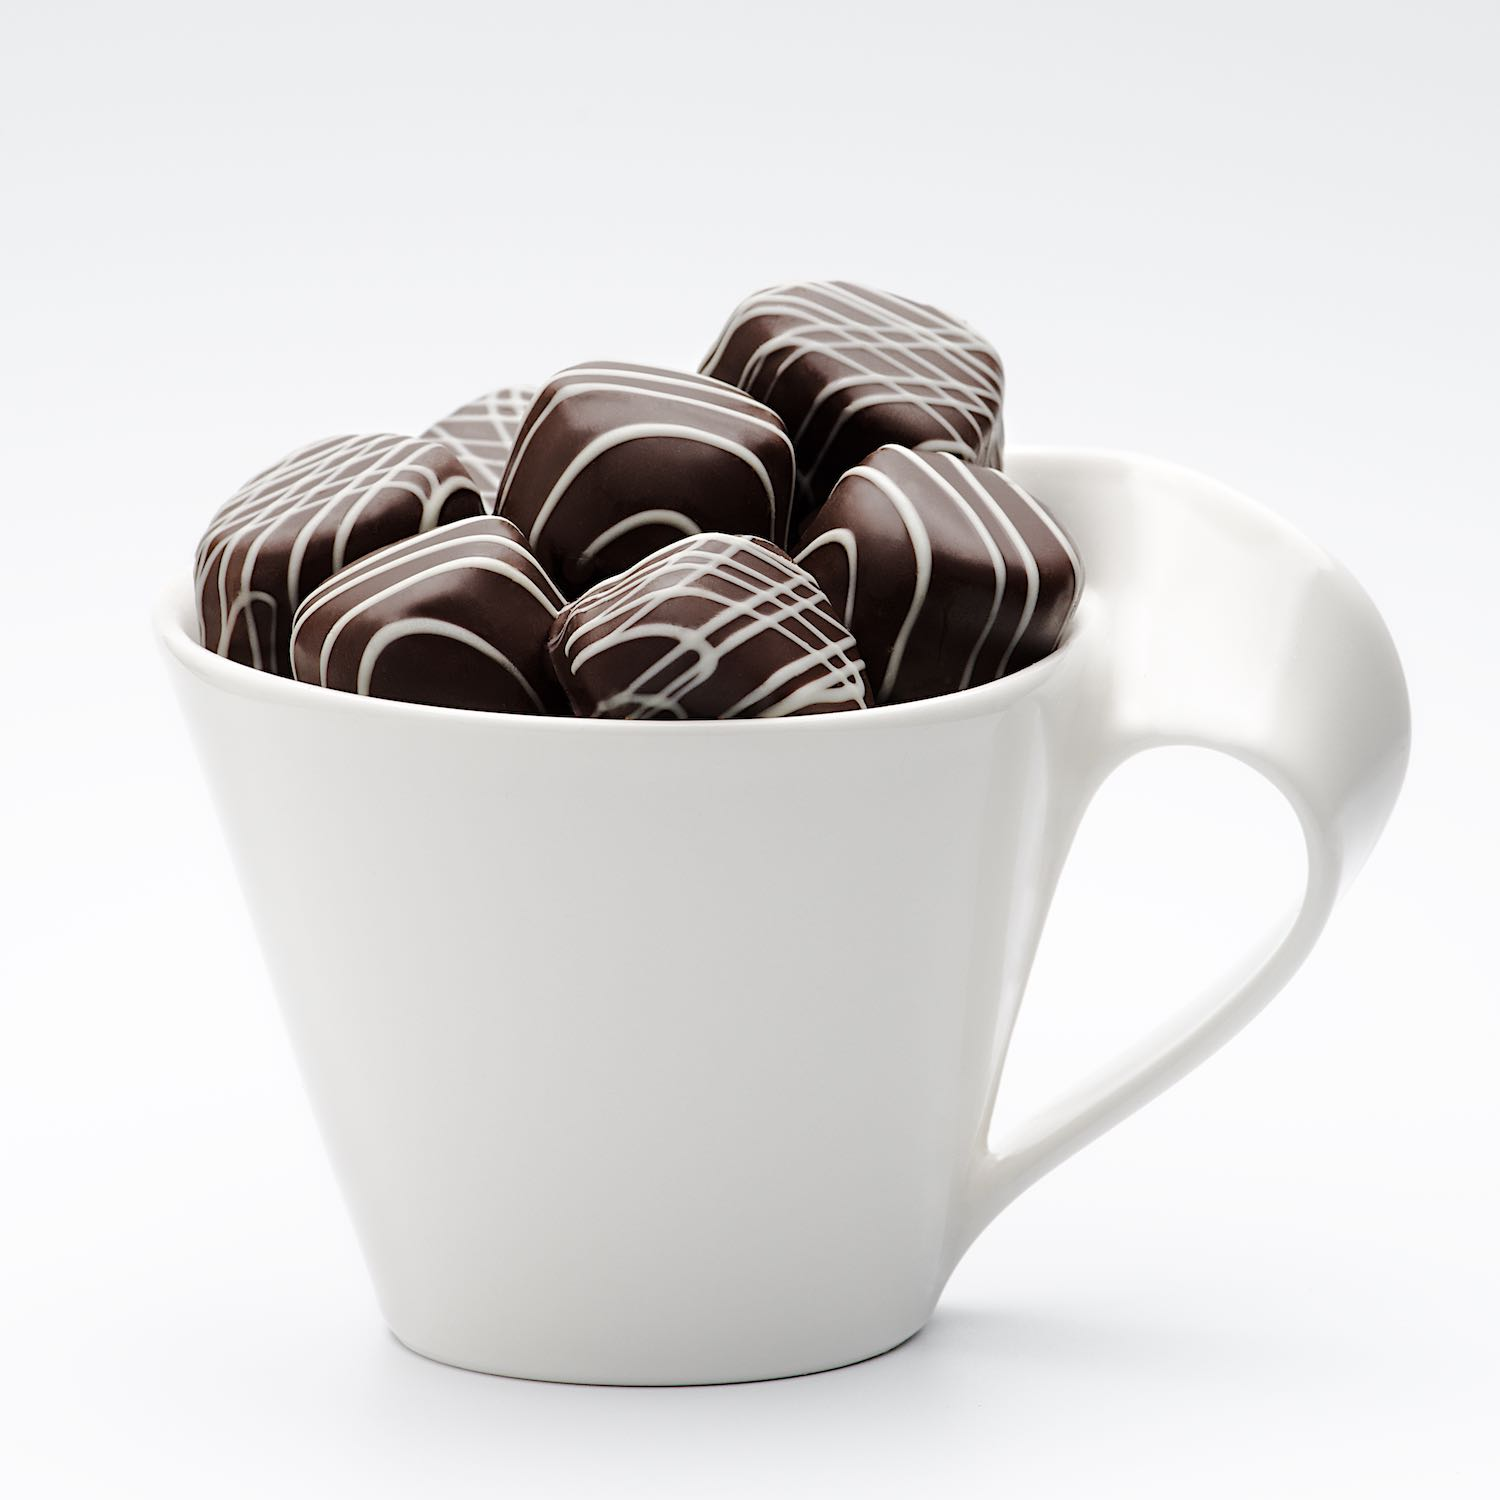 Dark chocolate candy in white coffee cup on white background © Bret Doss Commercial Food & Product Photography  Seattle